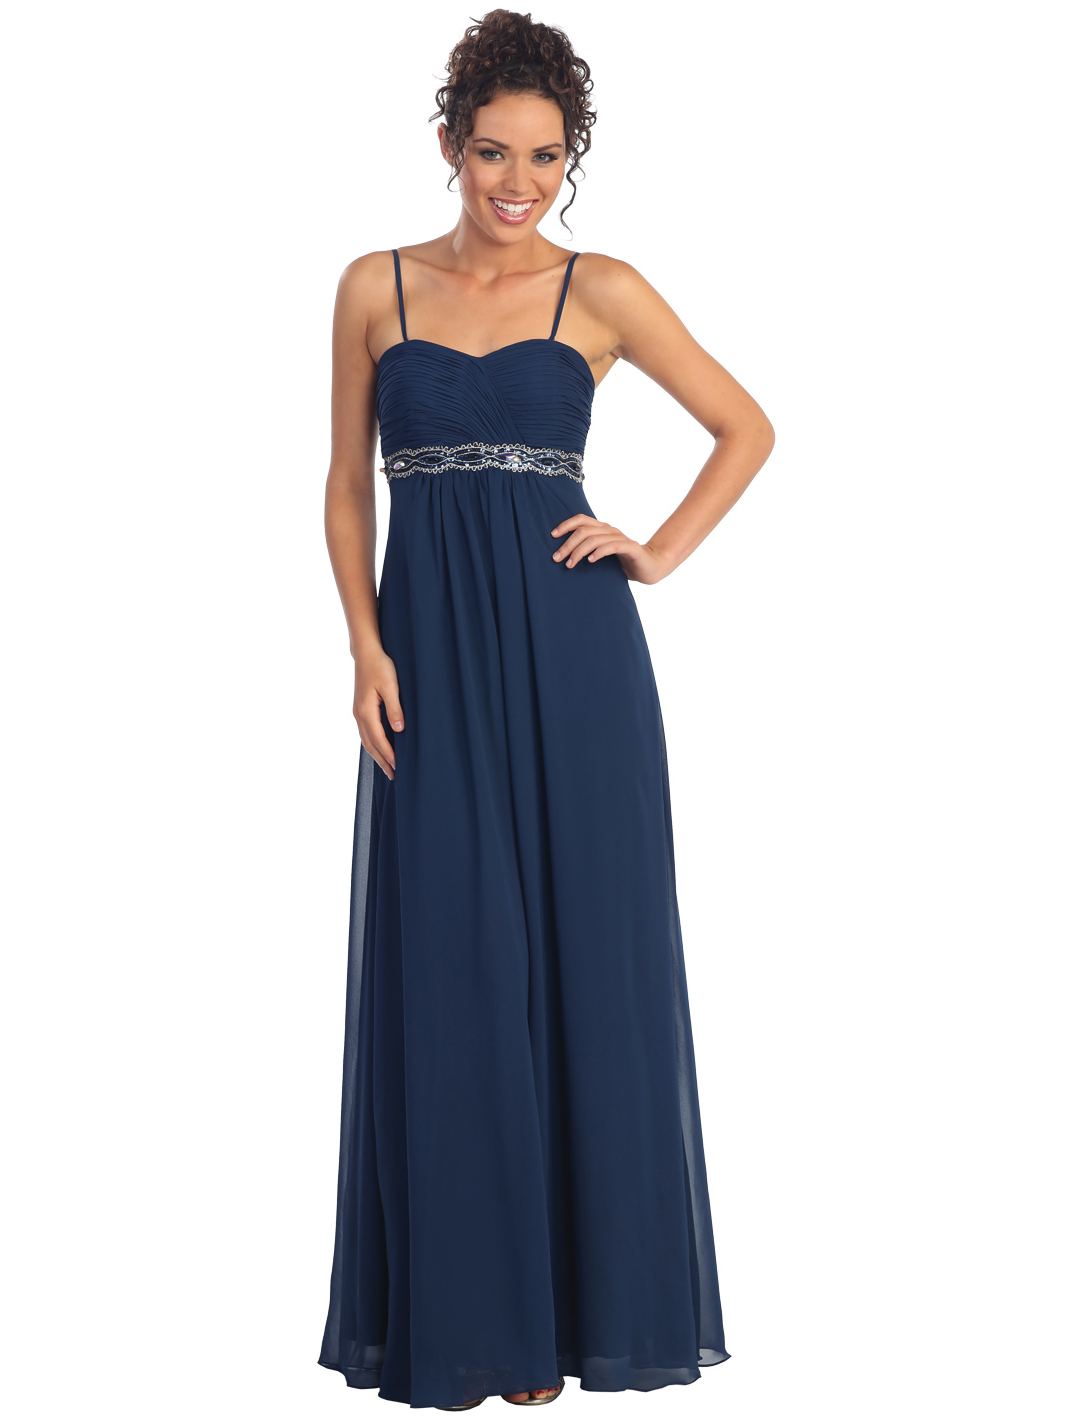 Chiffon Empire Waist Evening Dress